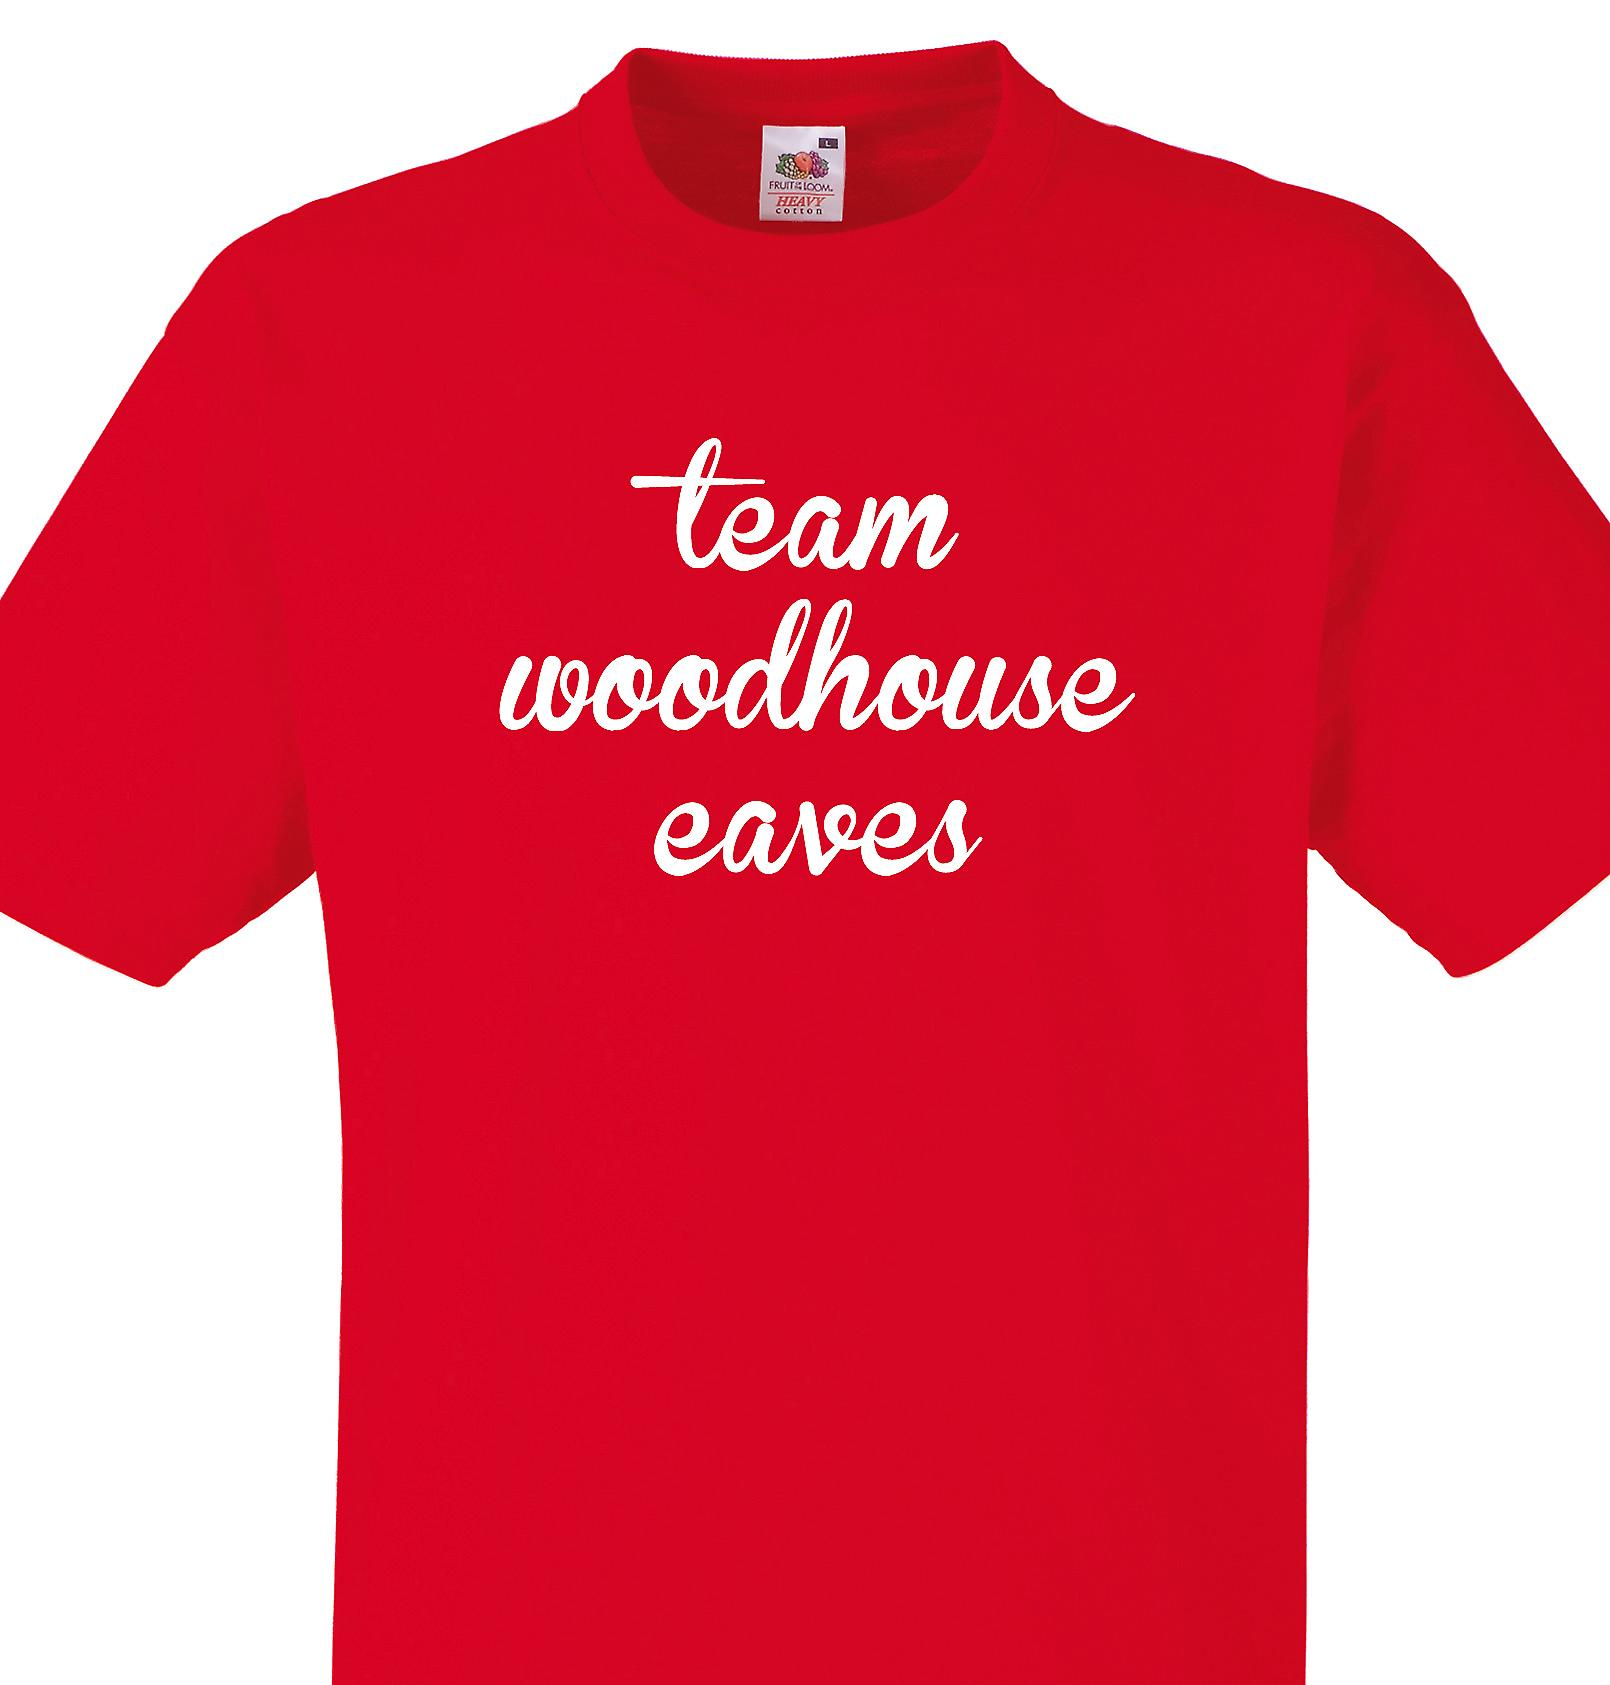 Team Woodhouse eaves Red T shirt